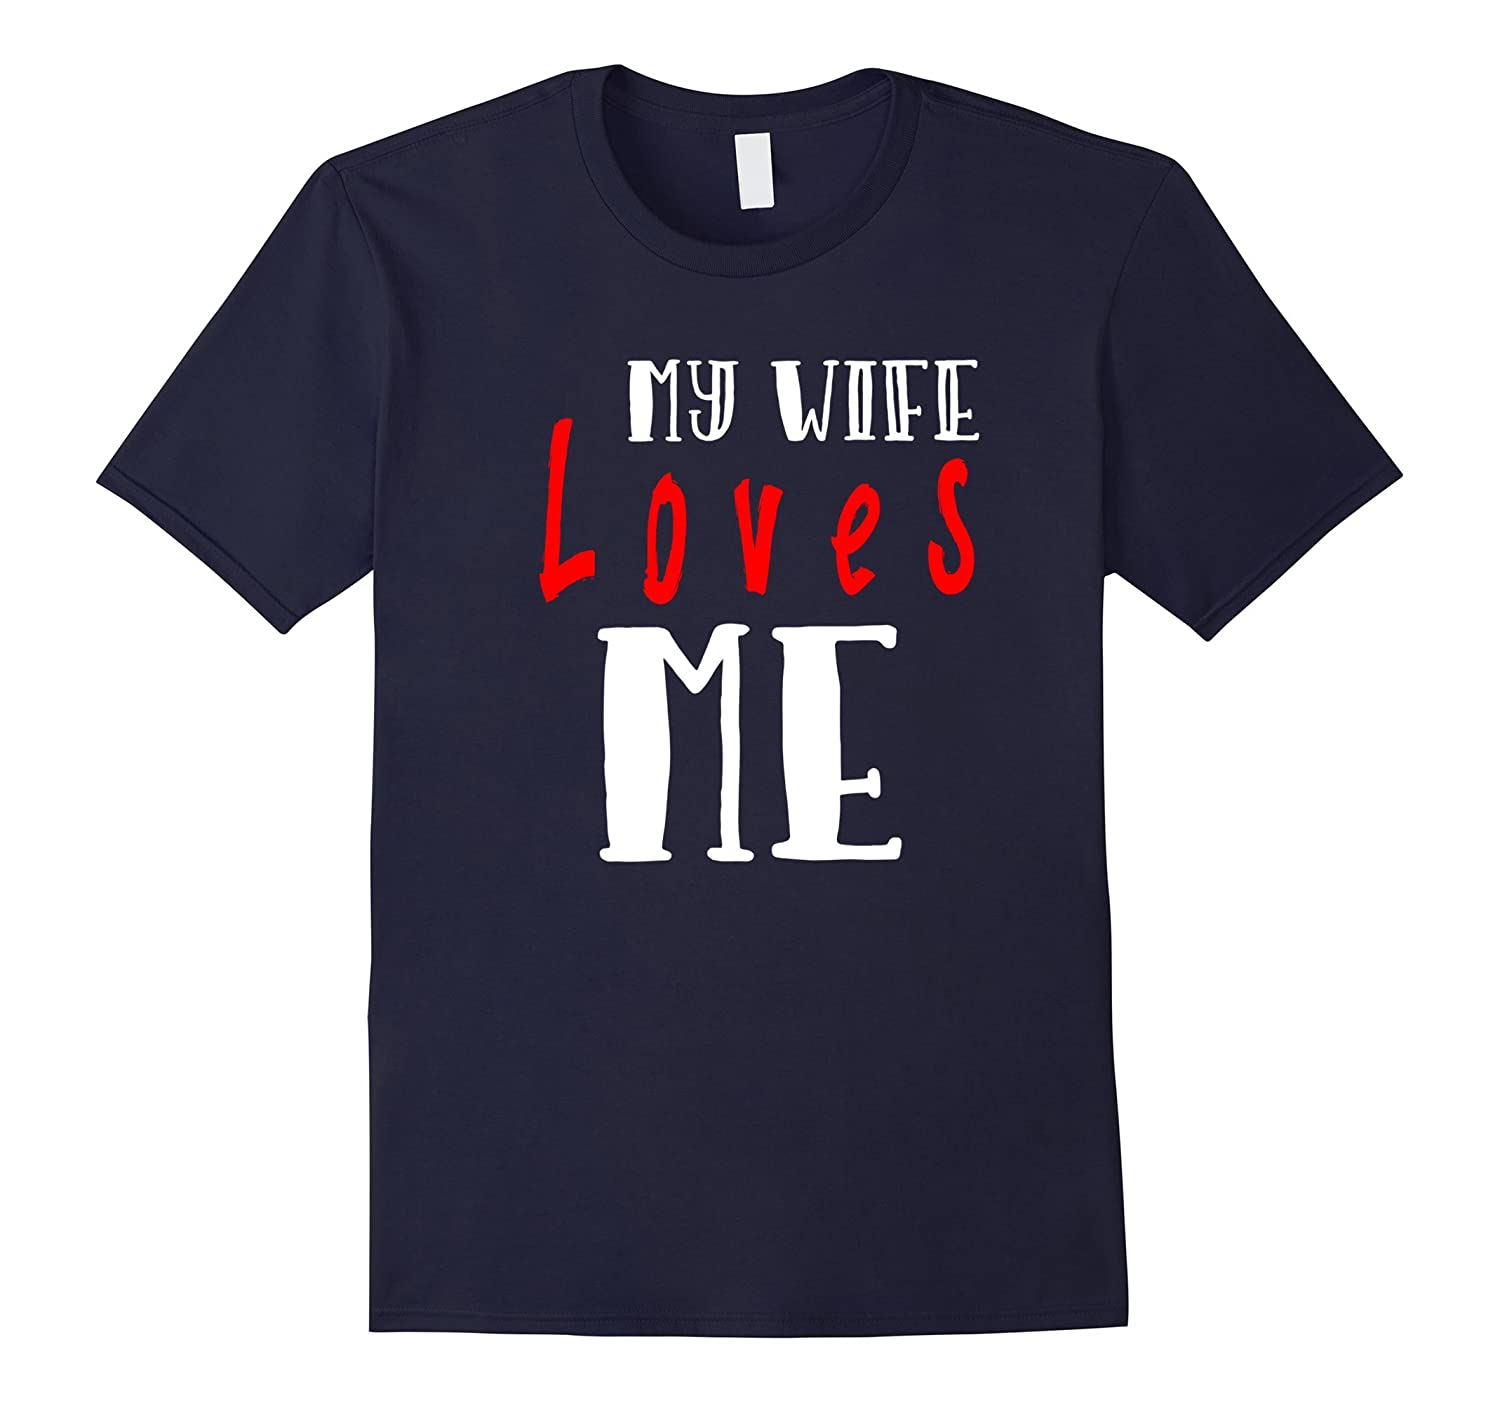 My Wife Loves Me T-shirt, Unique Valentine Gifts For Husband-ah my shirt one gift